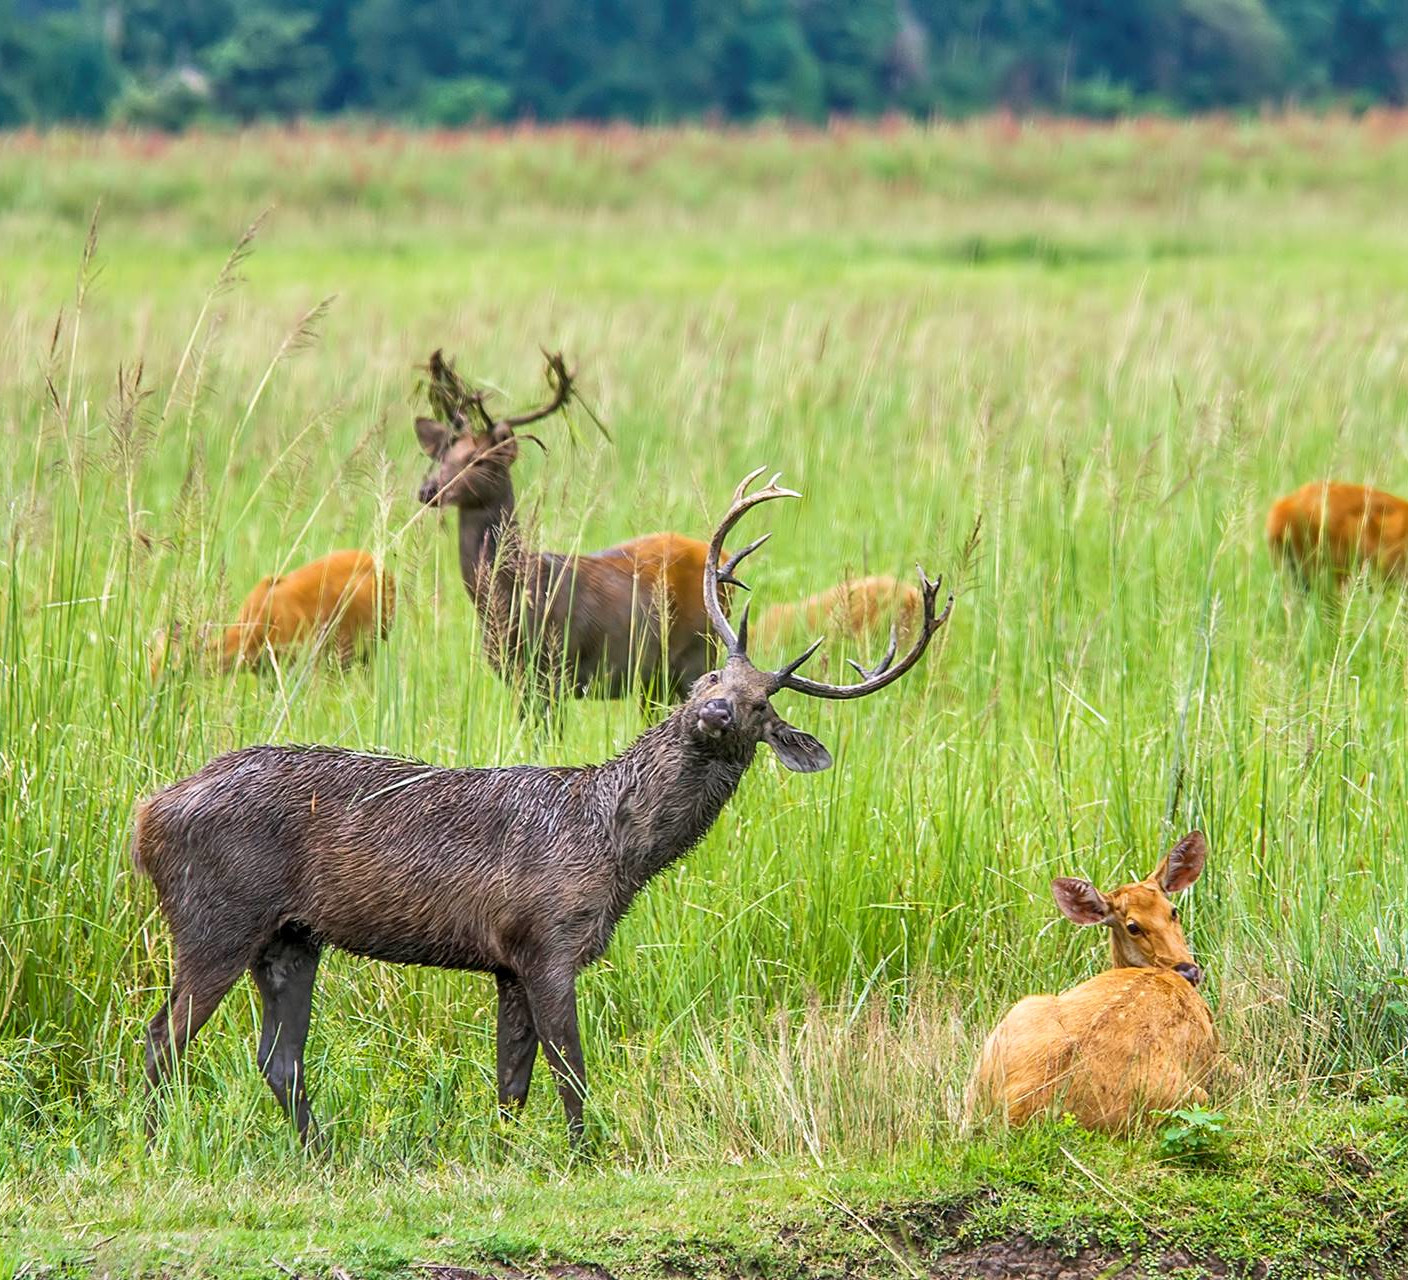 Grasslands are the Eastern Swamp Deer's Only Domain